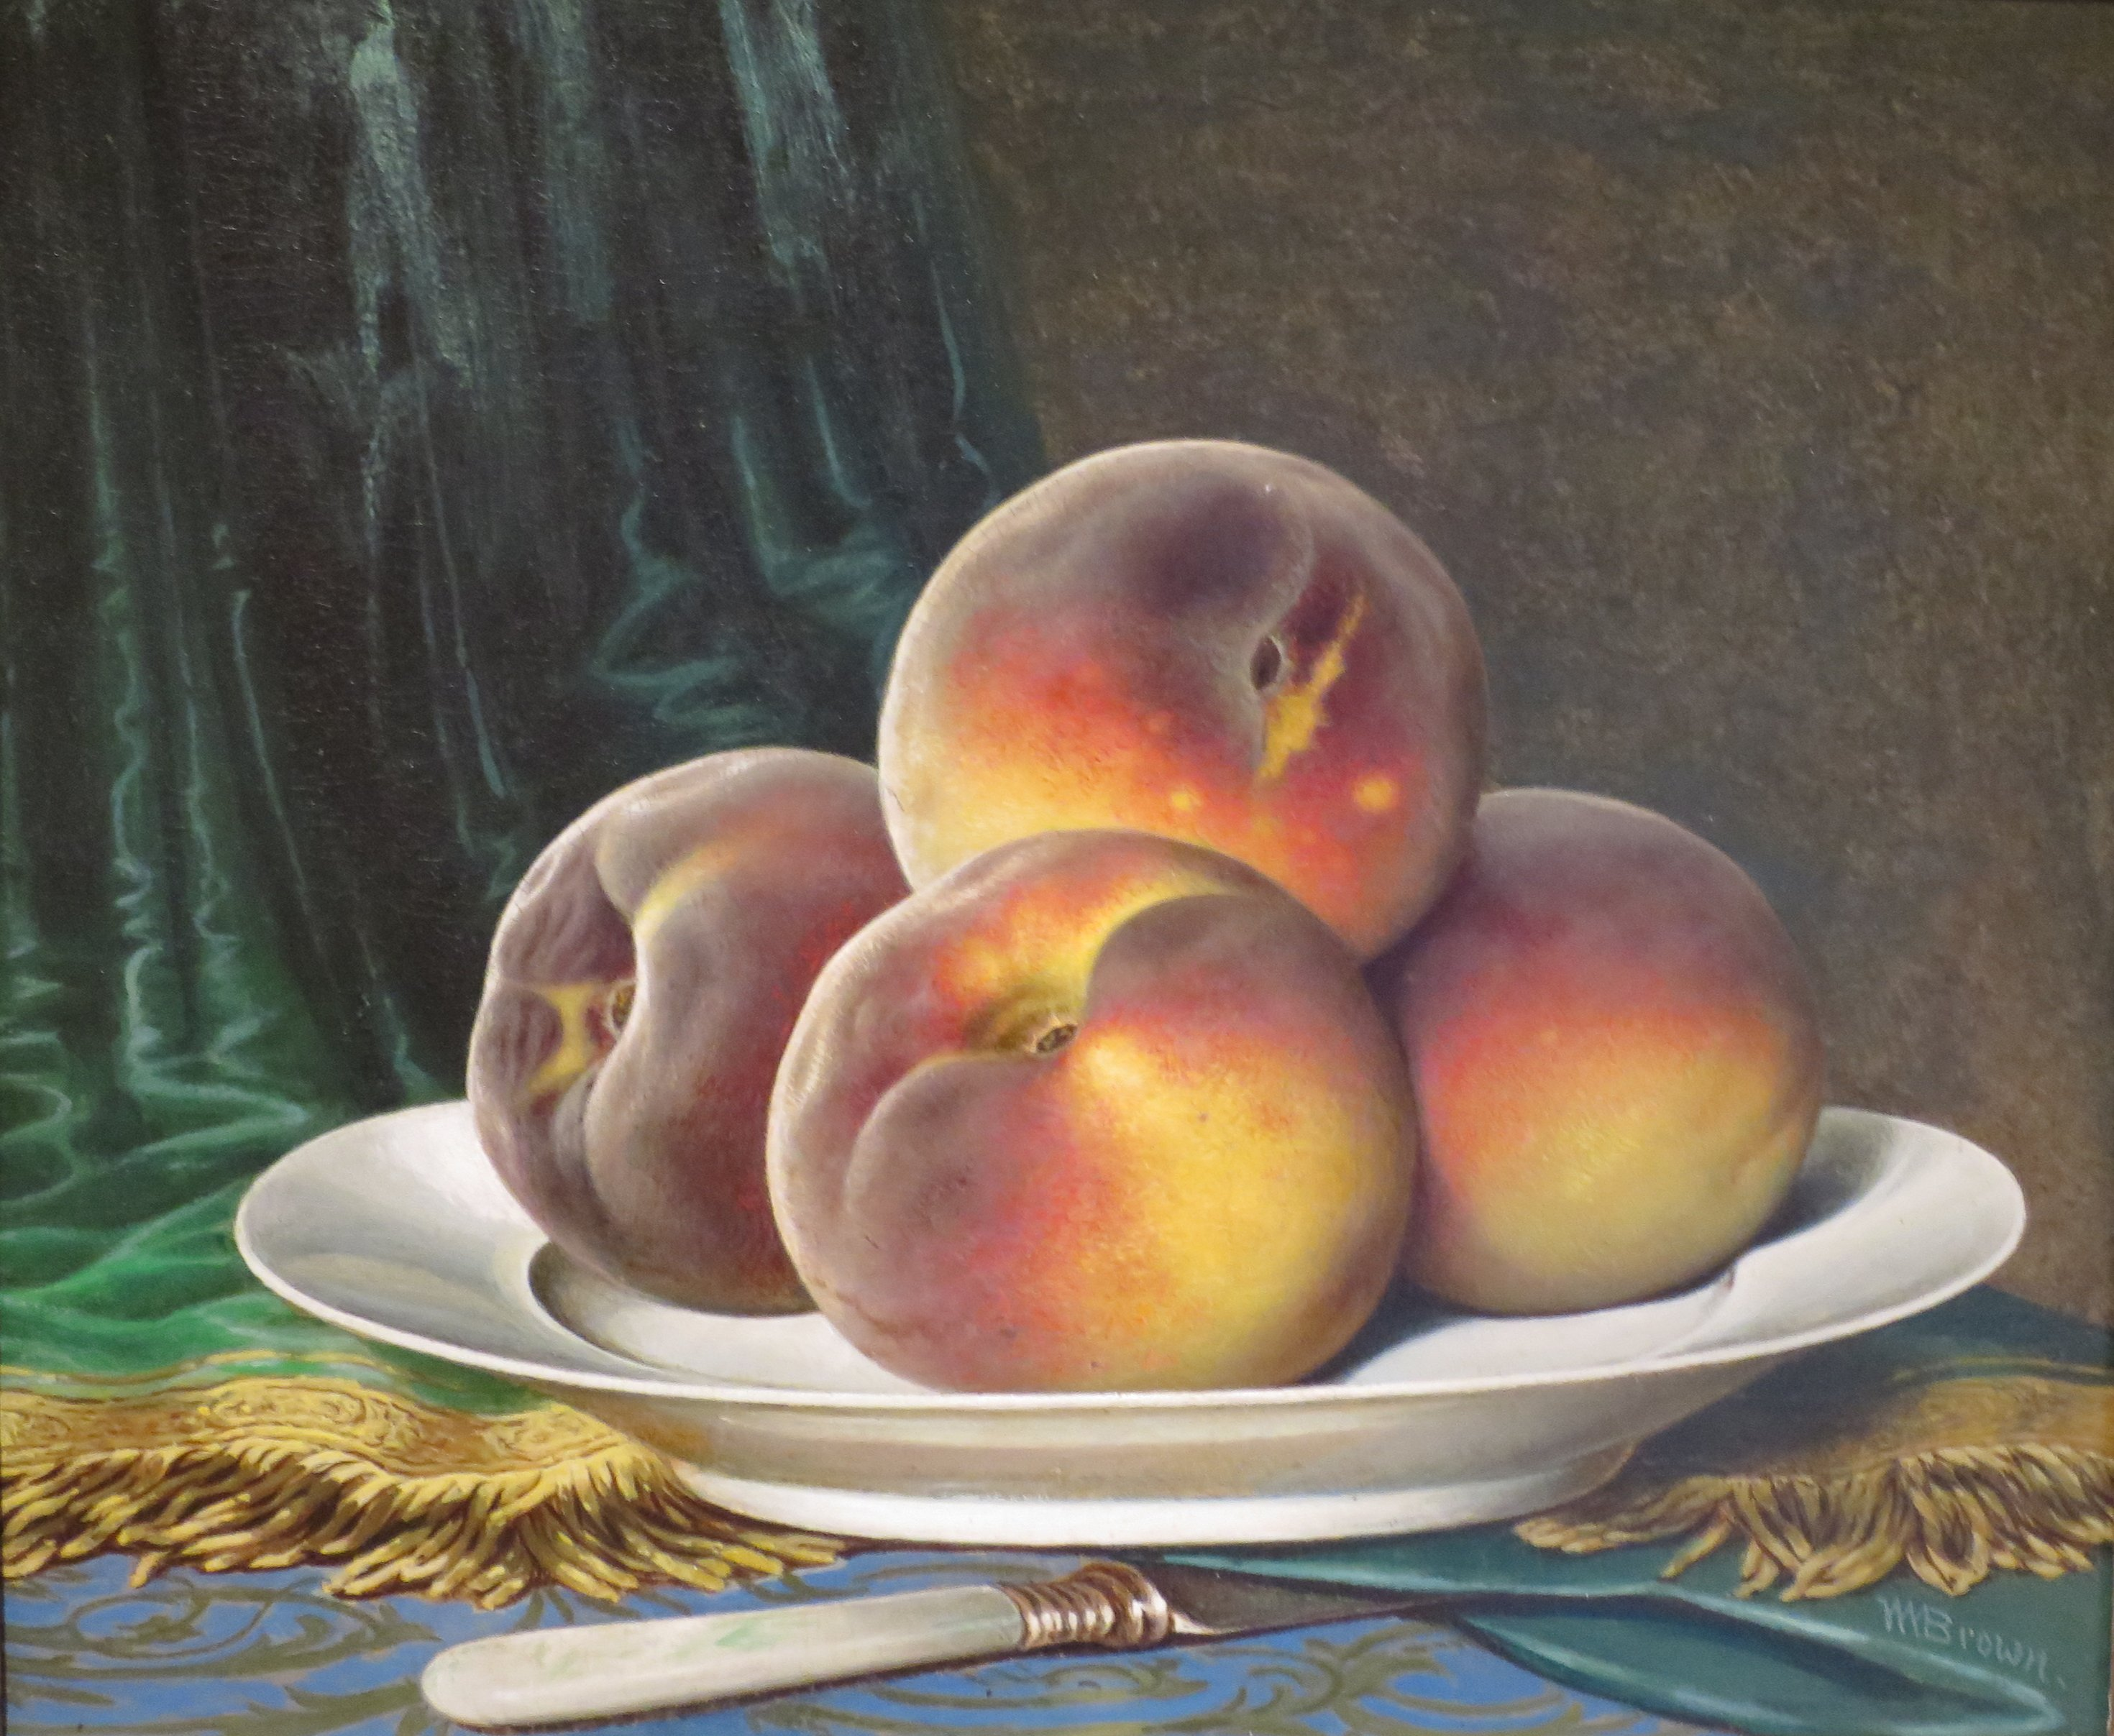 What Type Of Oil >> File:William Mason Brown - 'Peaches on a White Plate', c